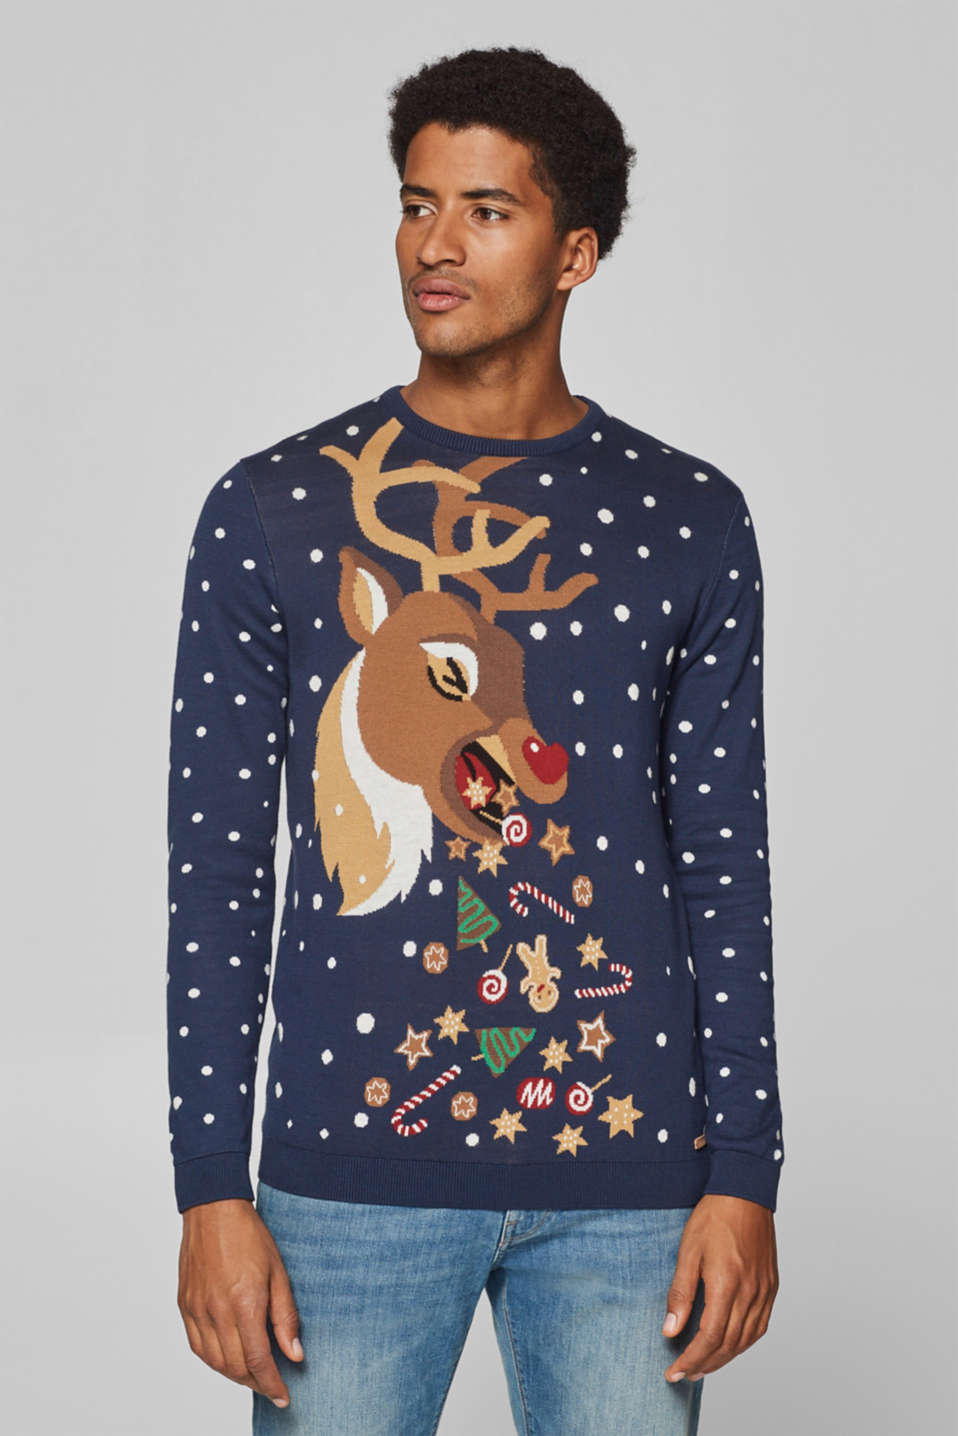 edc - 100% cotton: jumper with a reindeer motif